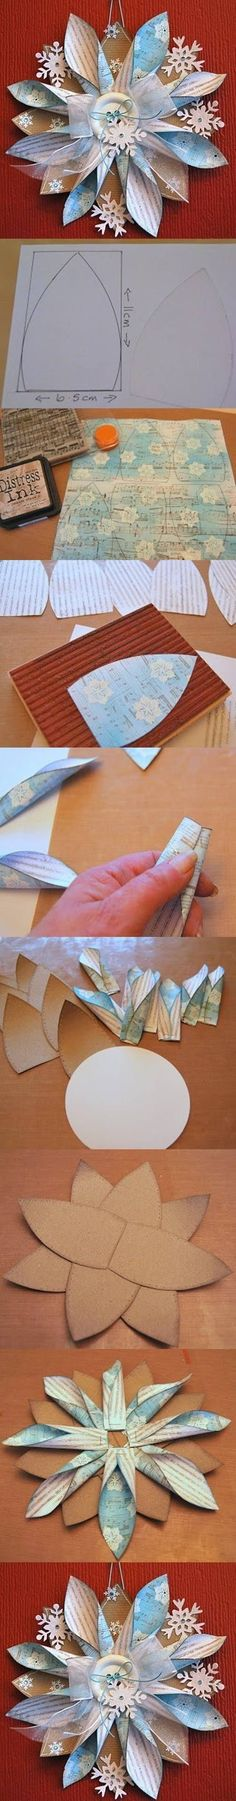 DIY Paper Ornaments diy craft crafts christmas diy crafts how to tutorial origami winter crafts christmas crafts